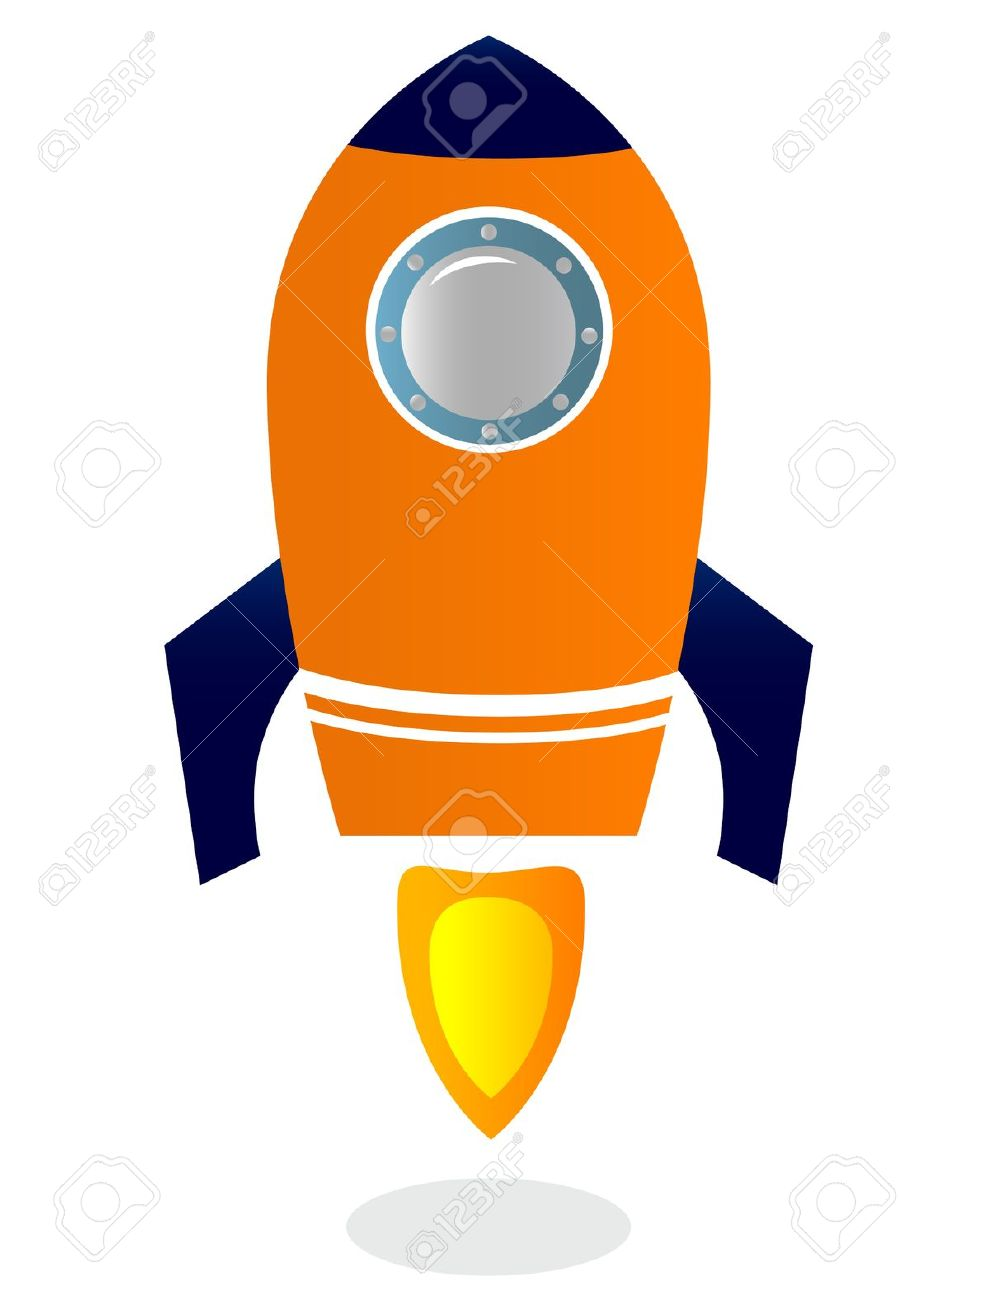 Rocket Ship Pics Clipart   Free download on ClipArtMag